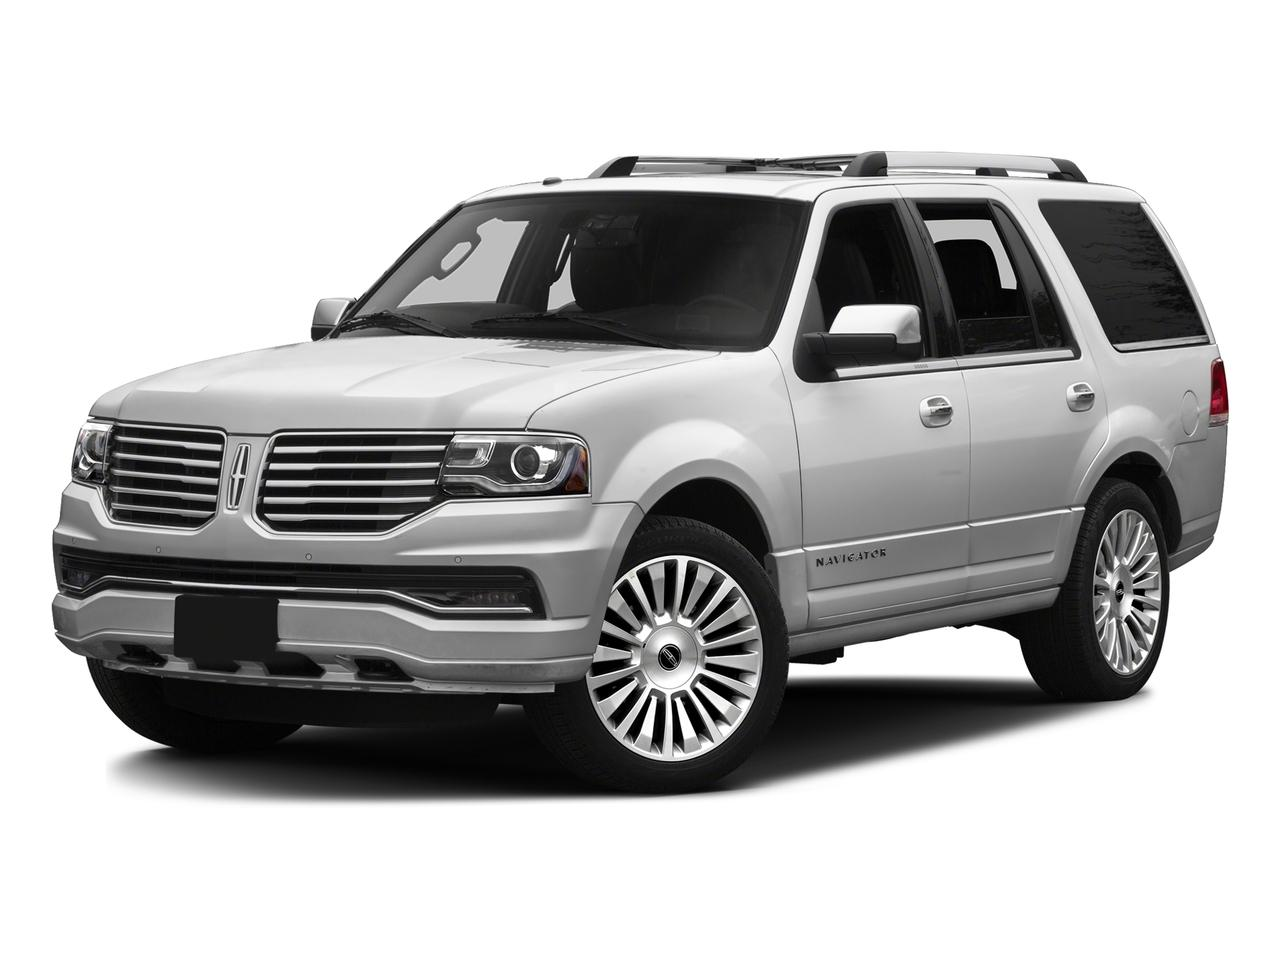 2016 LINCOLN Navigator Vehicle Photo in Killeen, TX 76541